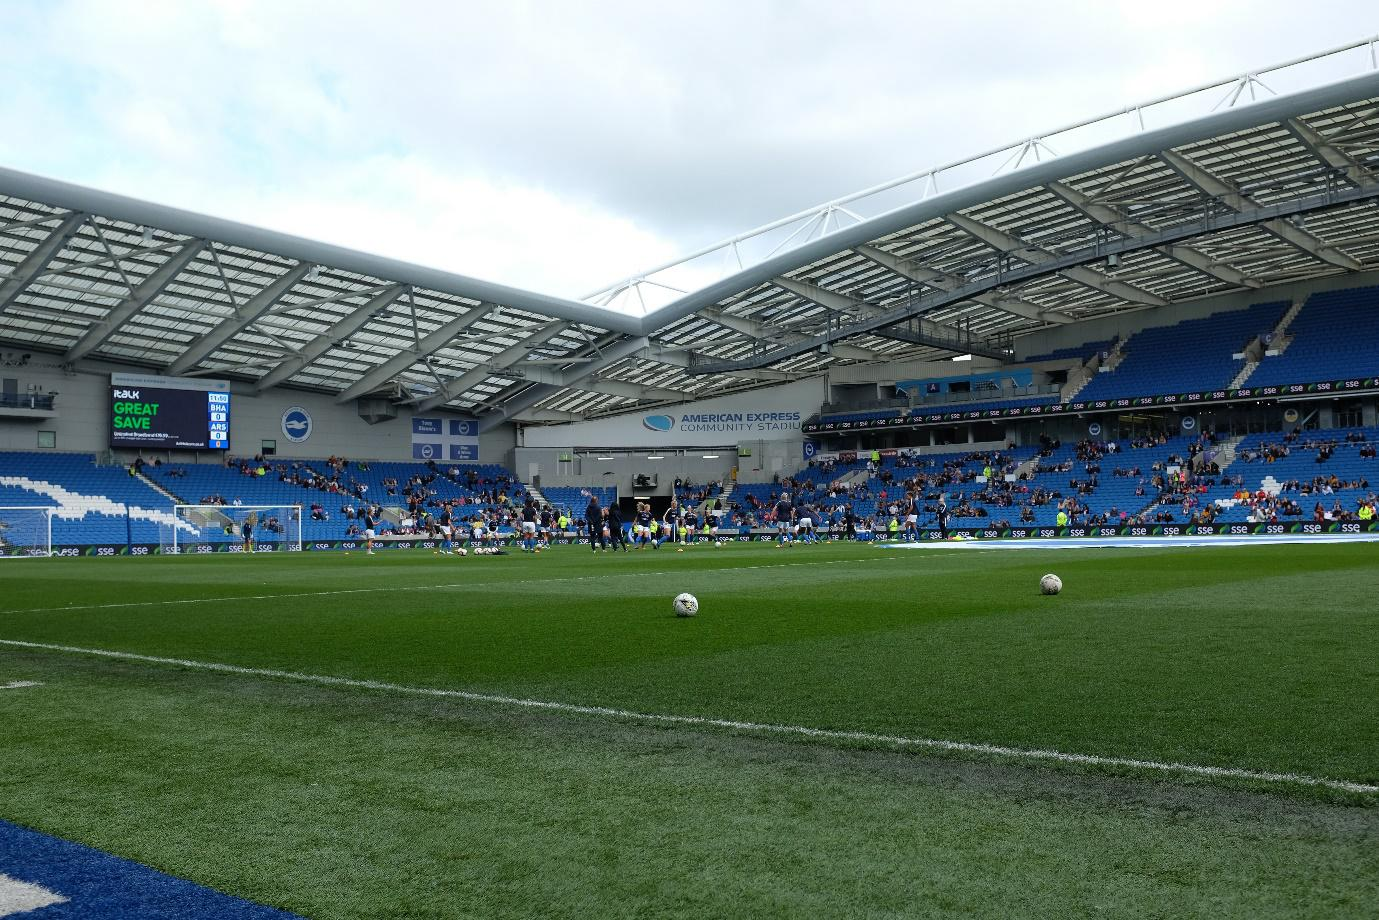 Brighton and Hove Albion Ground